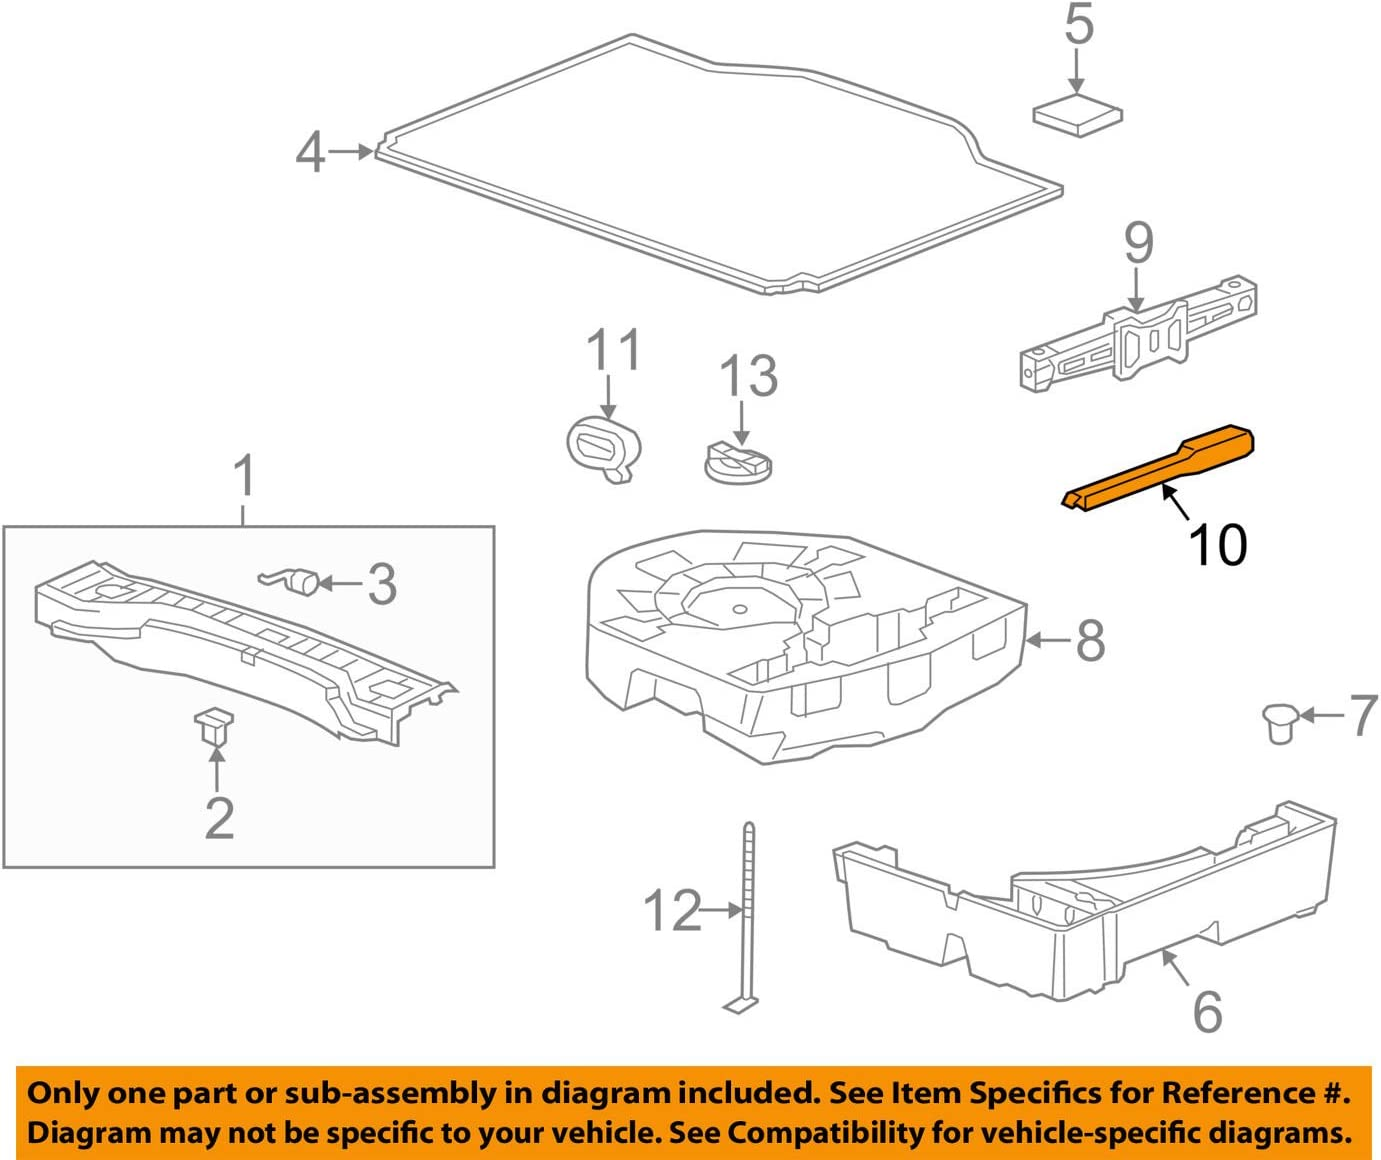 13348506 Genuine GM Wrench Part#